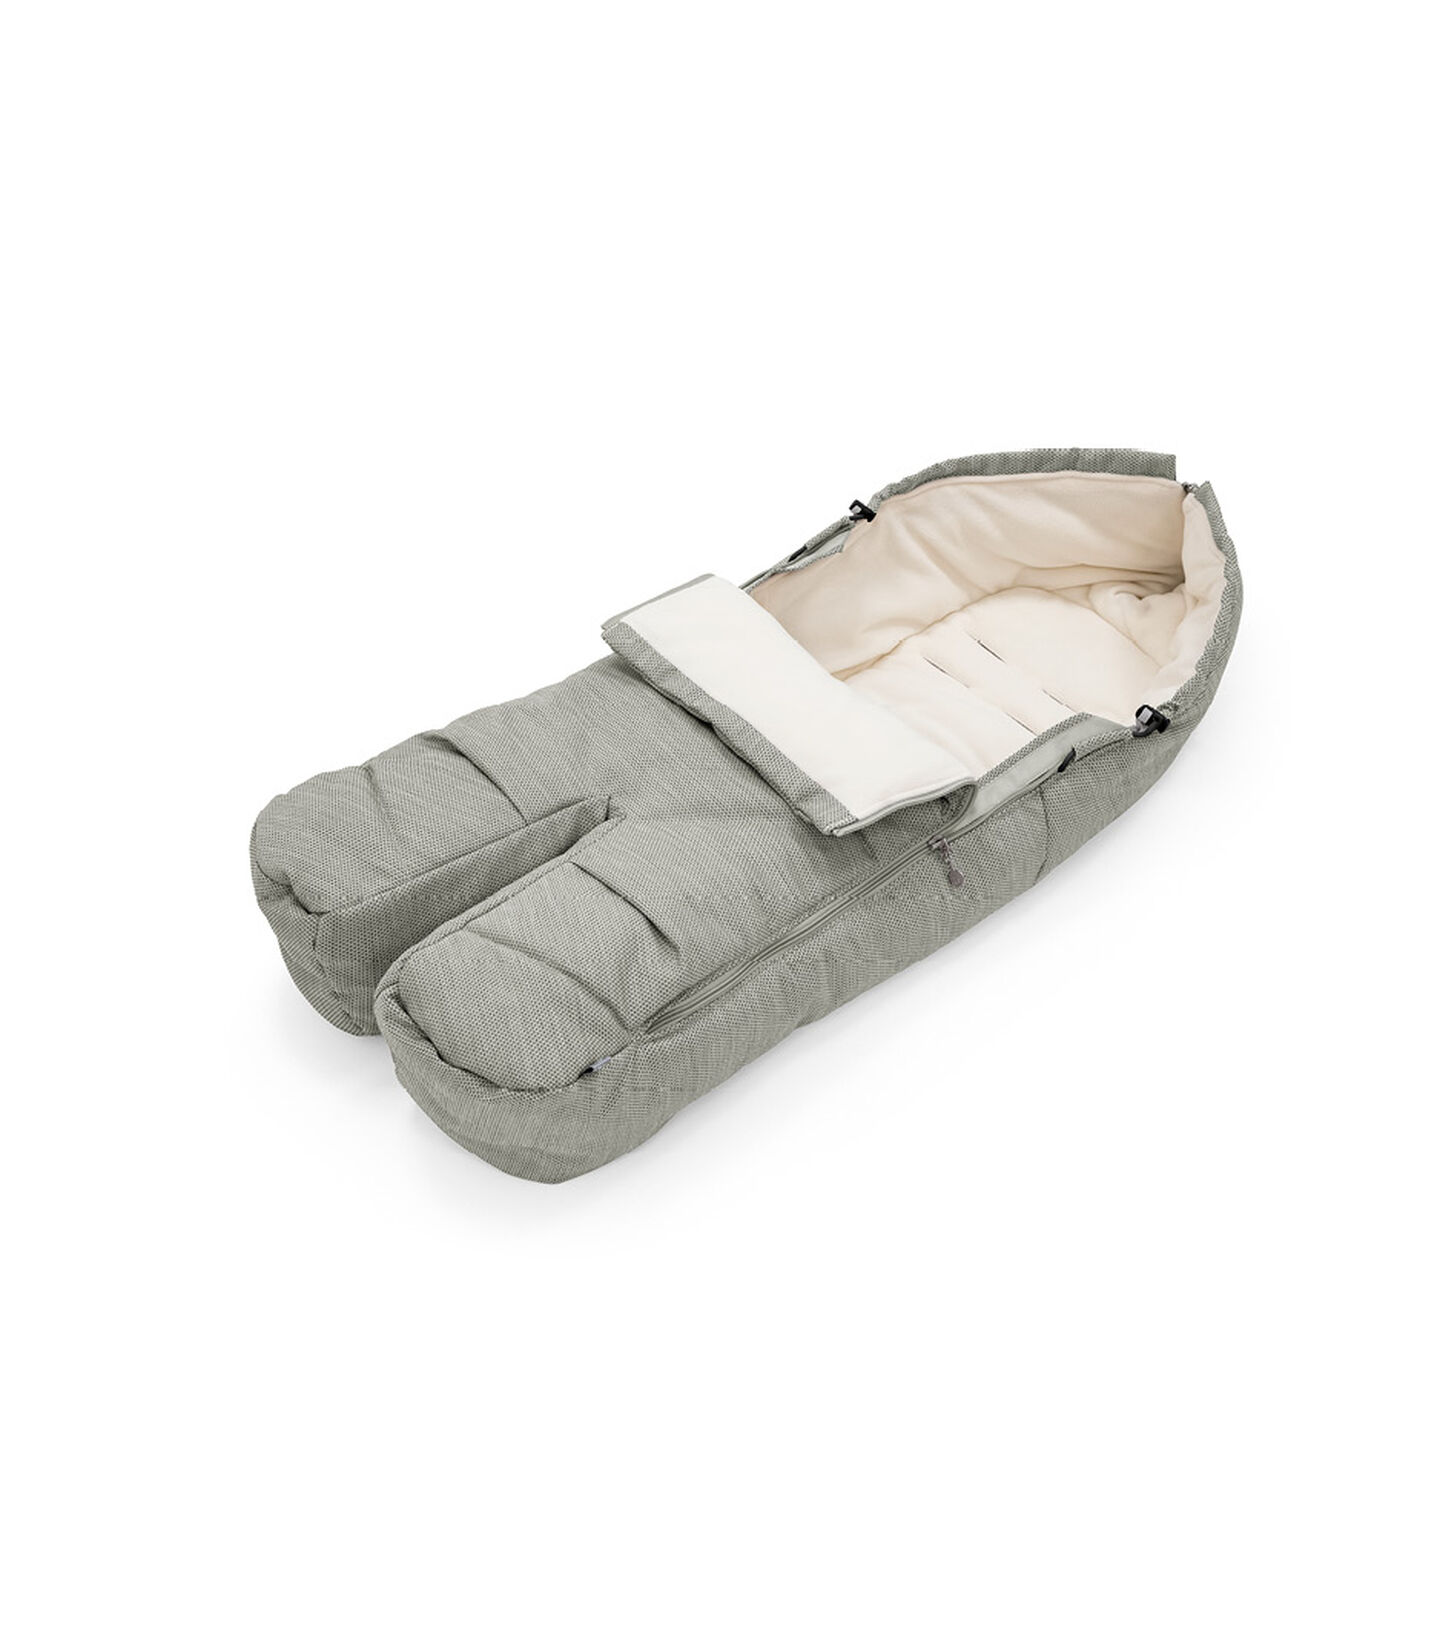 Stokke® Foot Muff Brushed Grey, Brushed Grey, mainview view 1